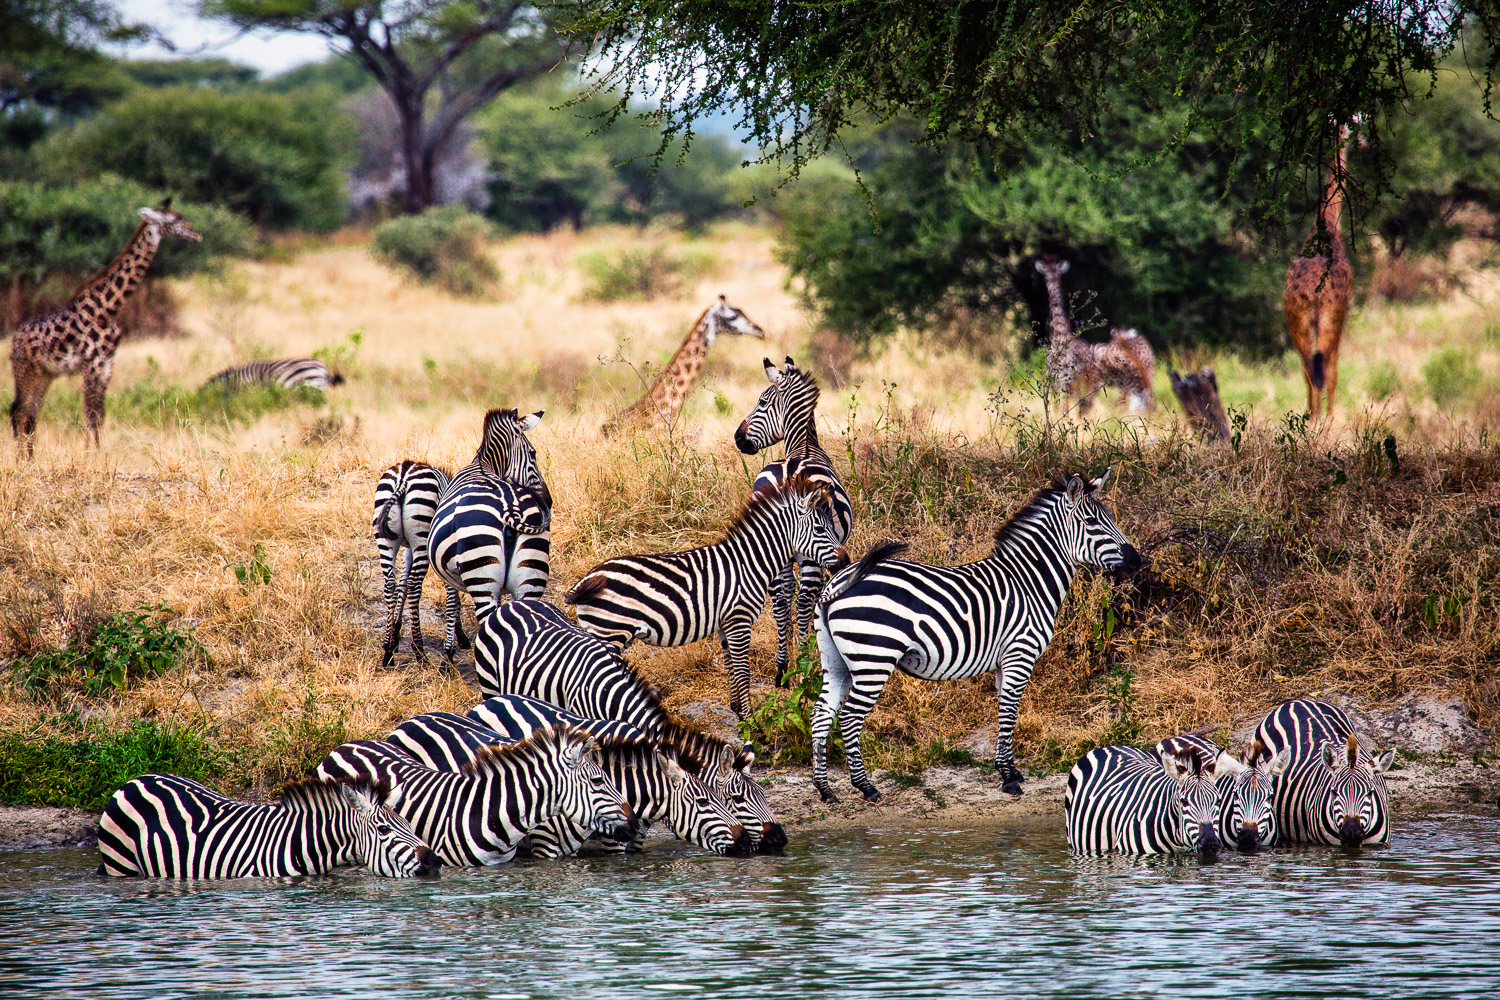 The Water Hole Serengeti, Tanzania